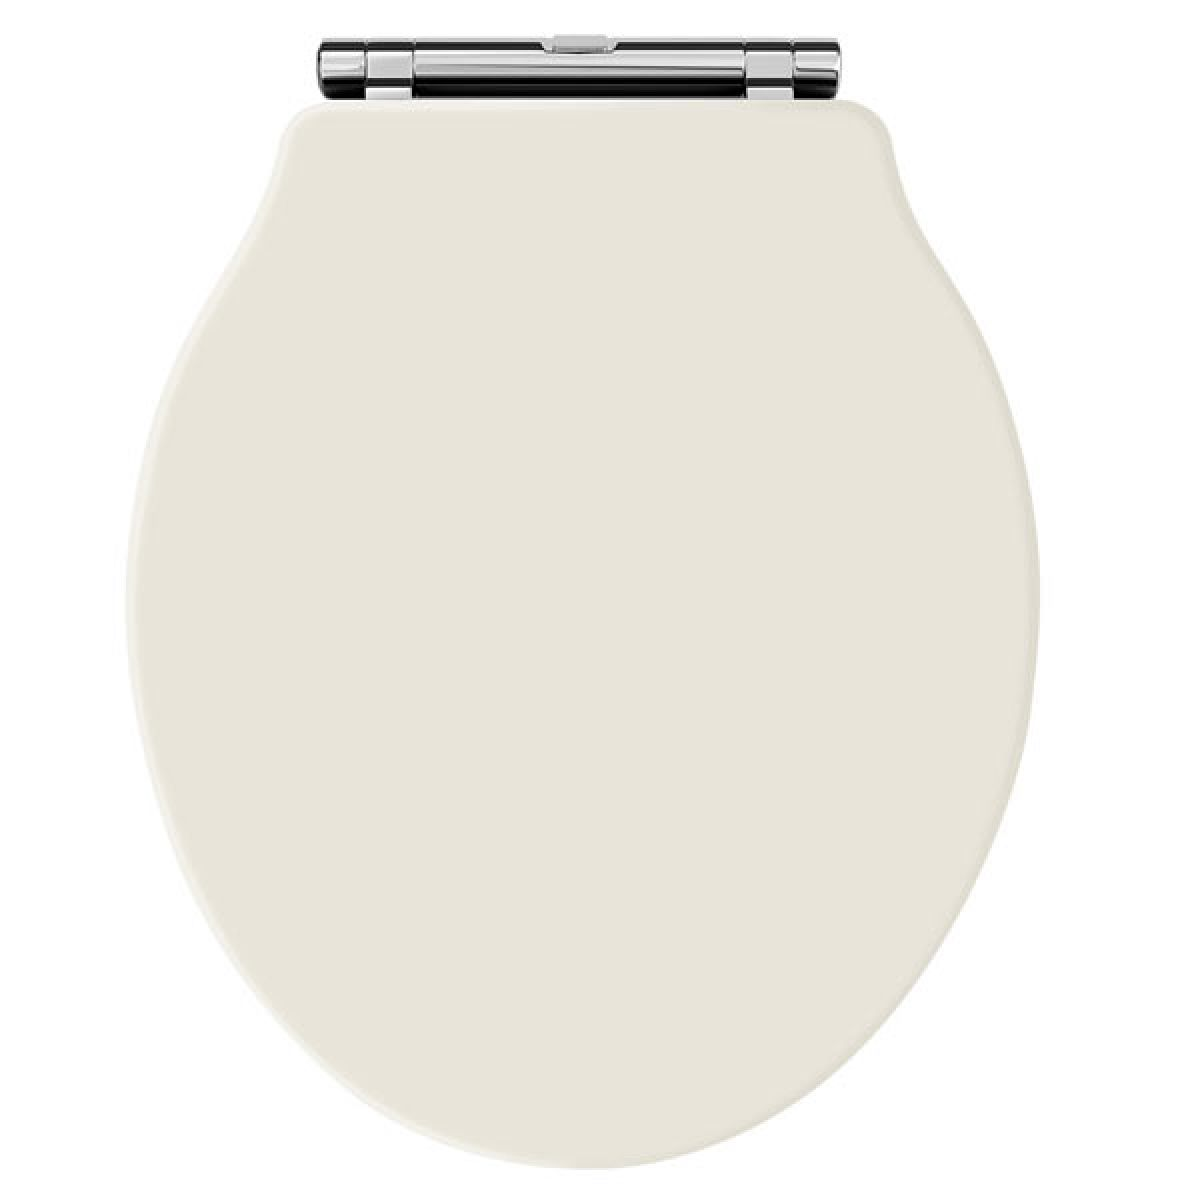 Premier Ryther Ivory Wooden Toilet Seat